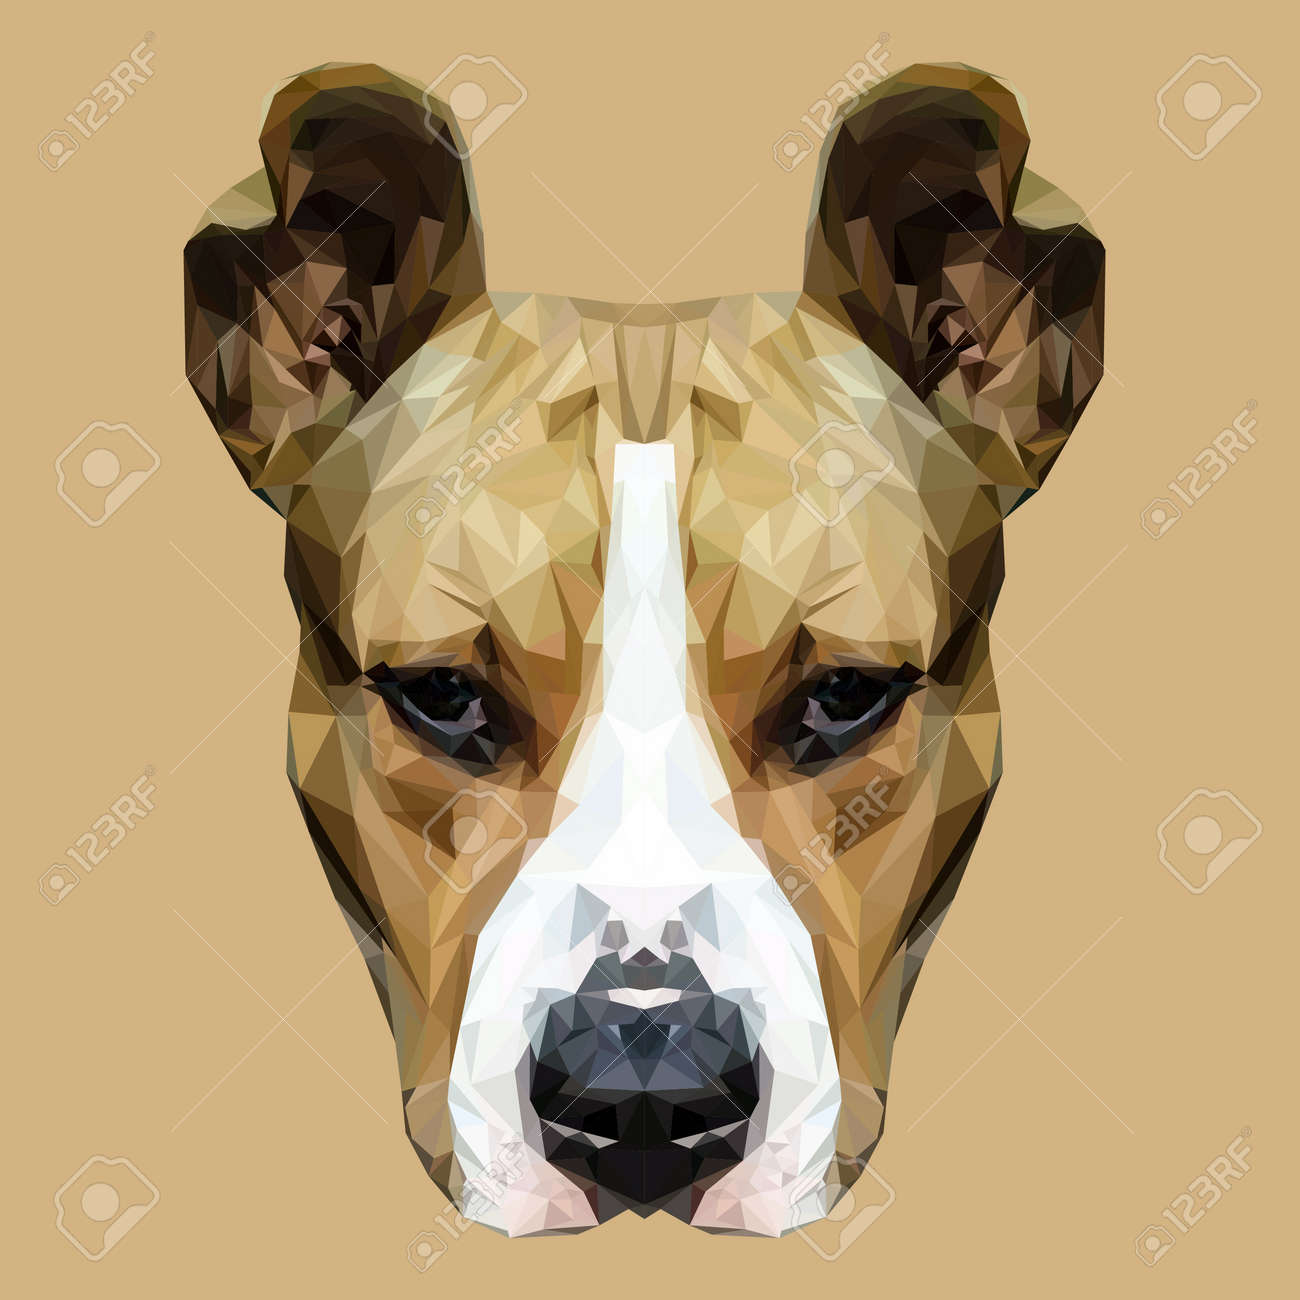 56506131-american-staffordshire-terrier-dog-animal-low-poly-design-triangle-vector-illustration-.jpg